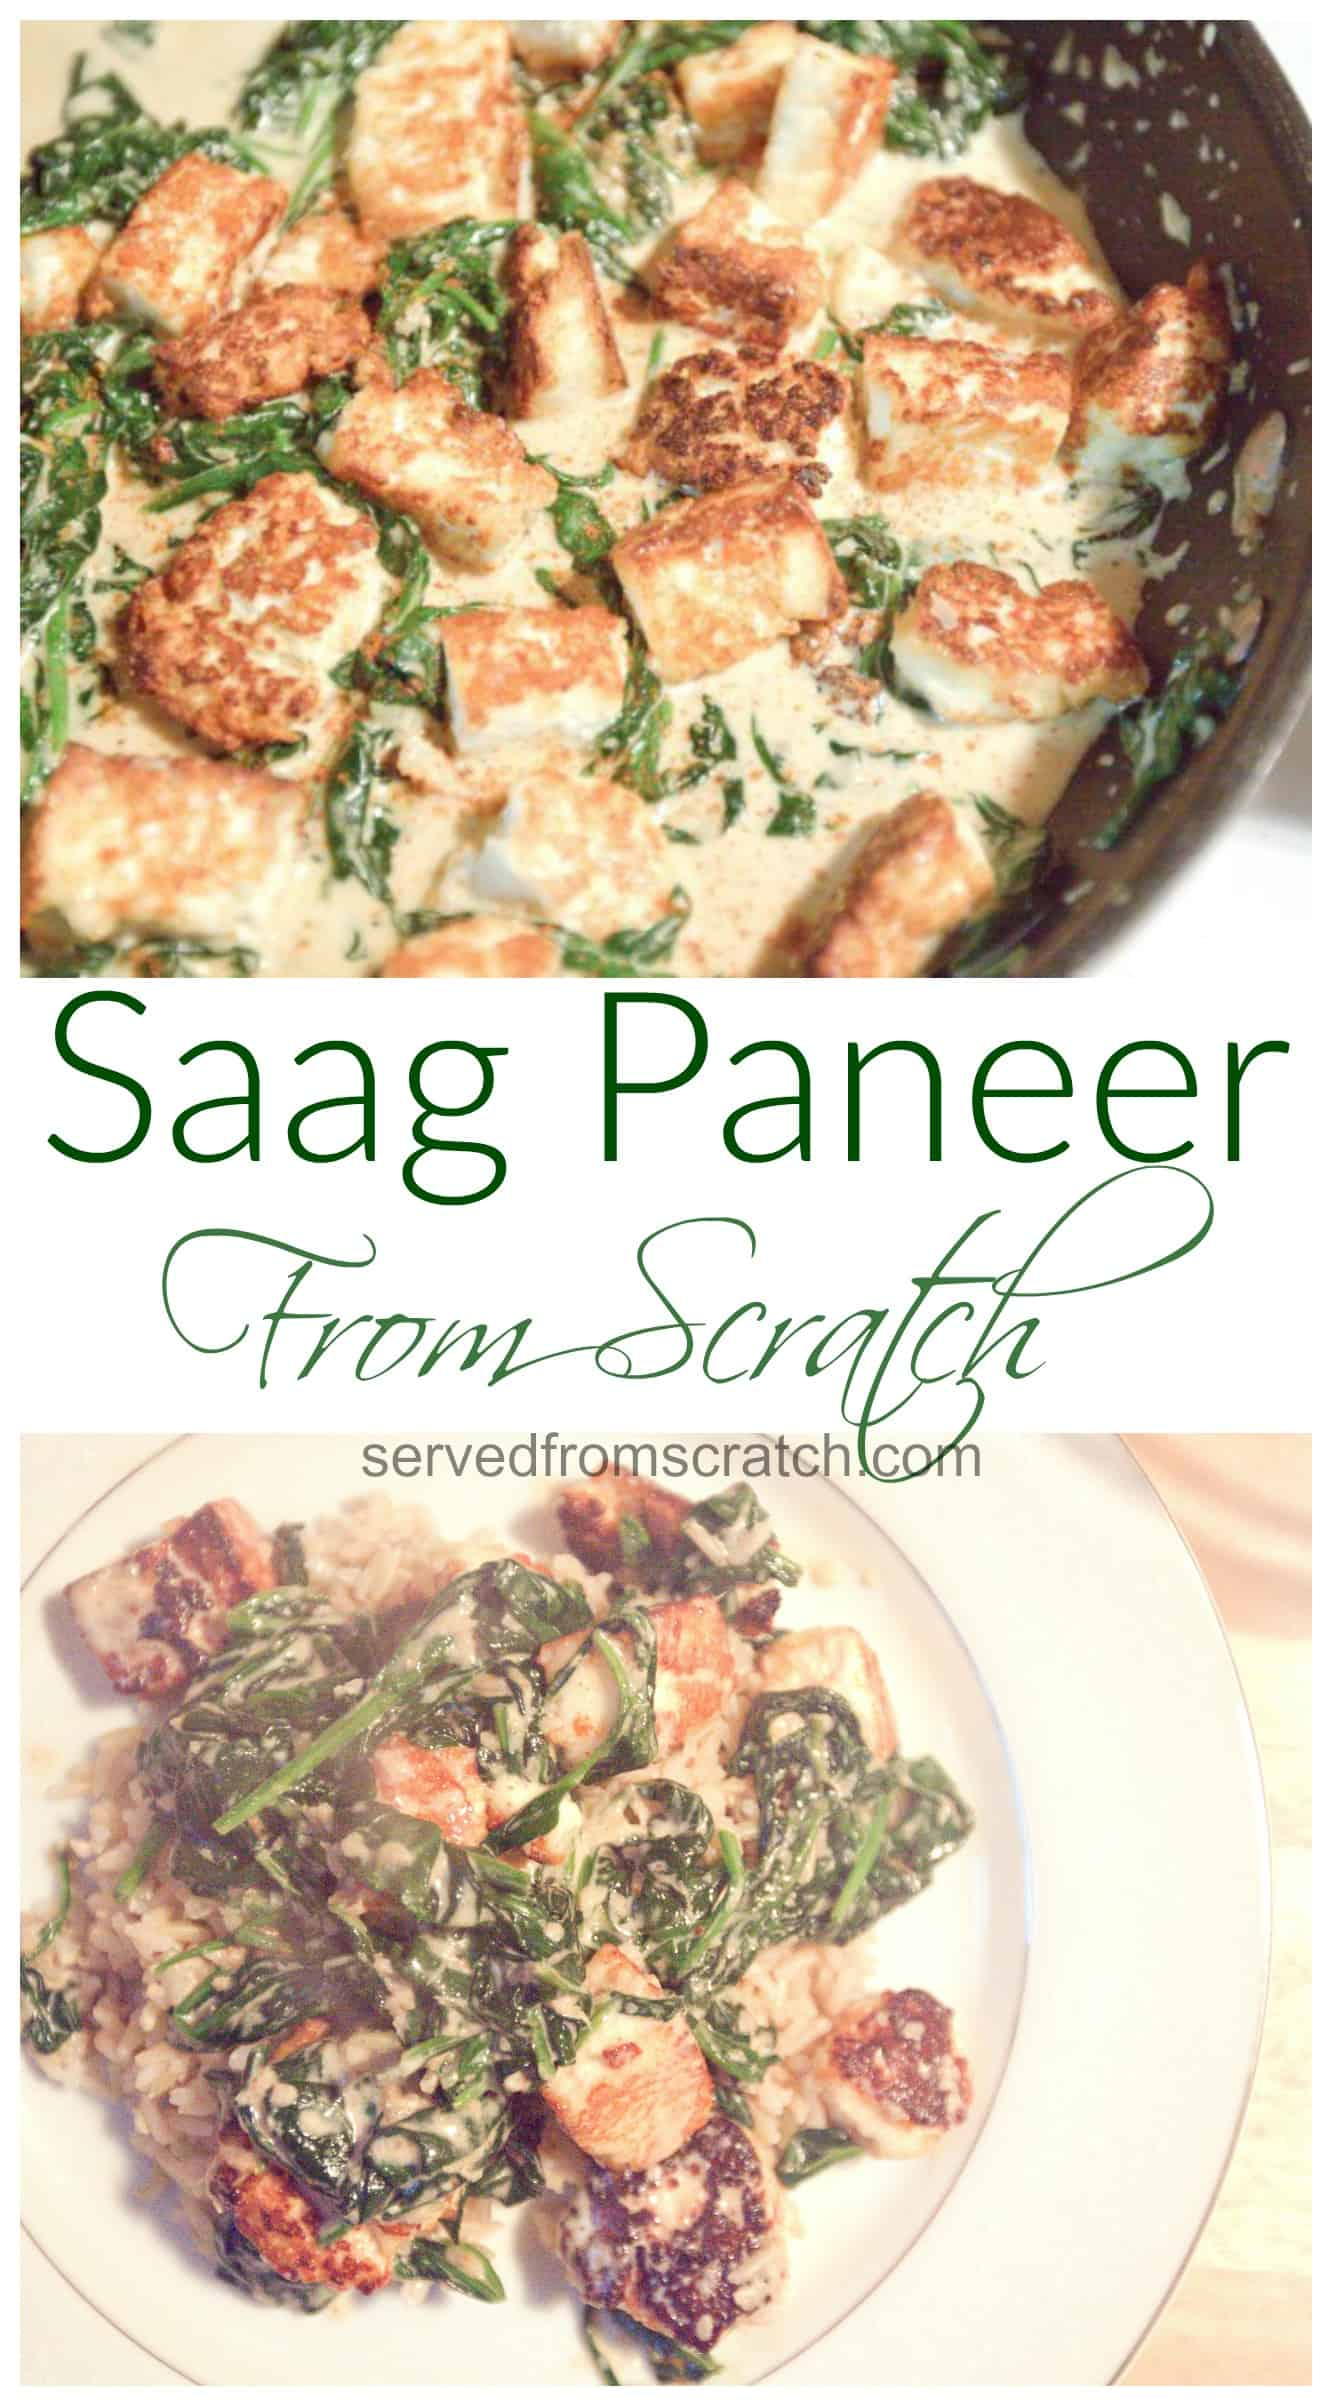 From Scratch Saag Paneer with homemade Paneer cheese!